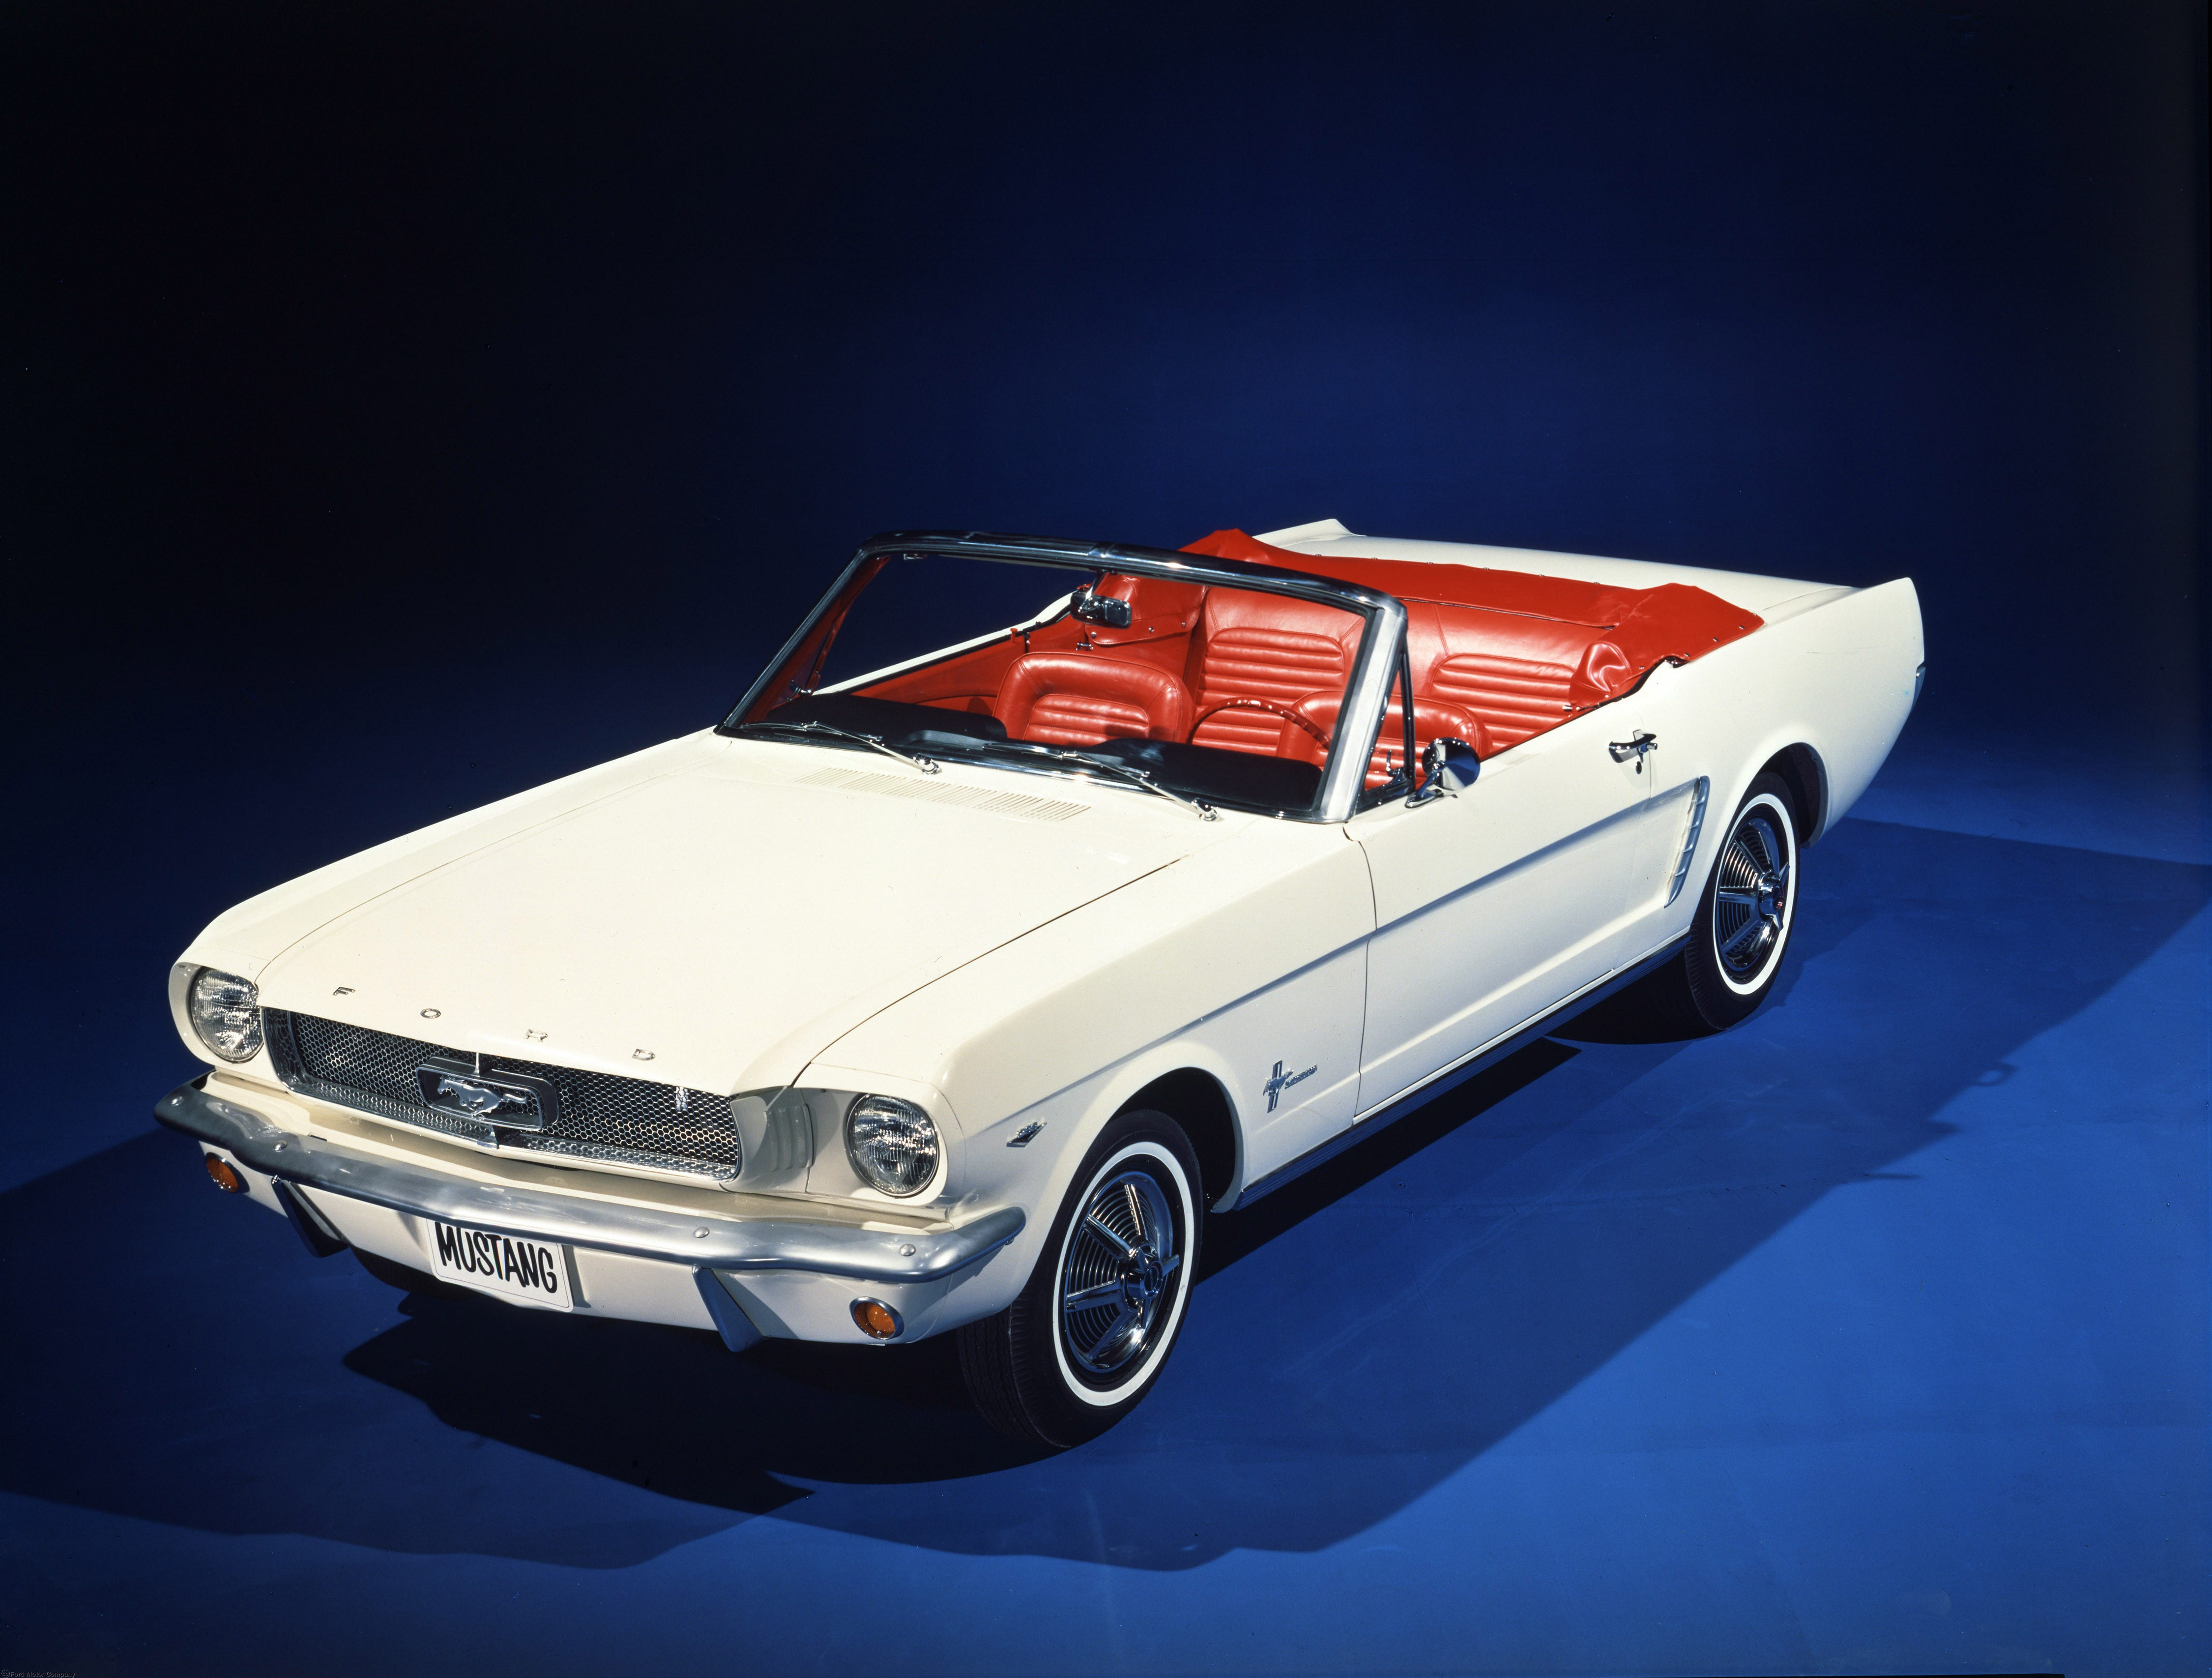 photo gallery, timeline 50 years of ford mustangs